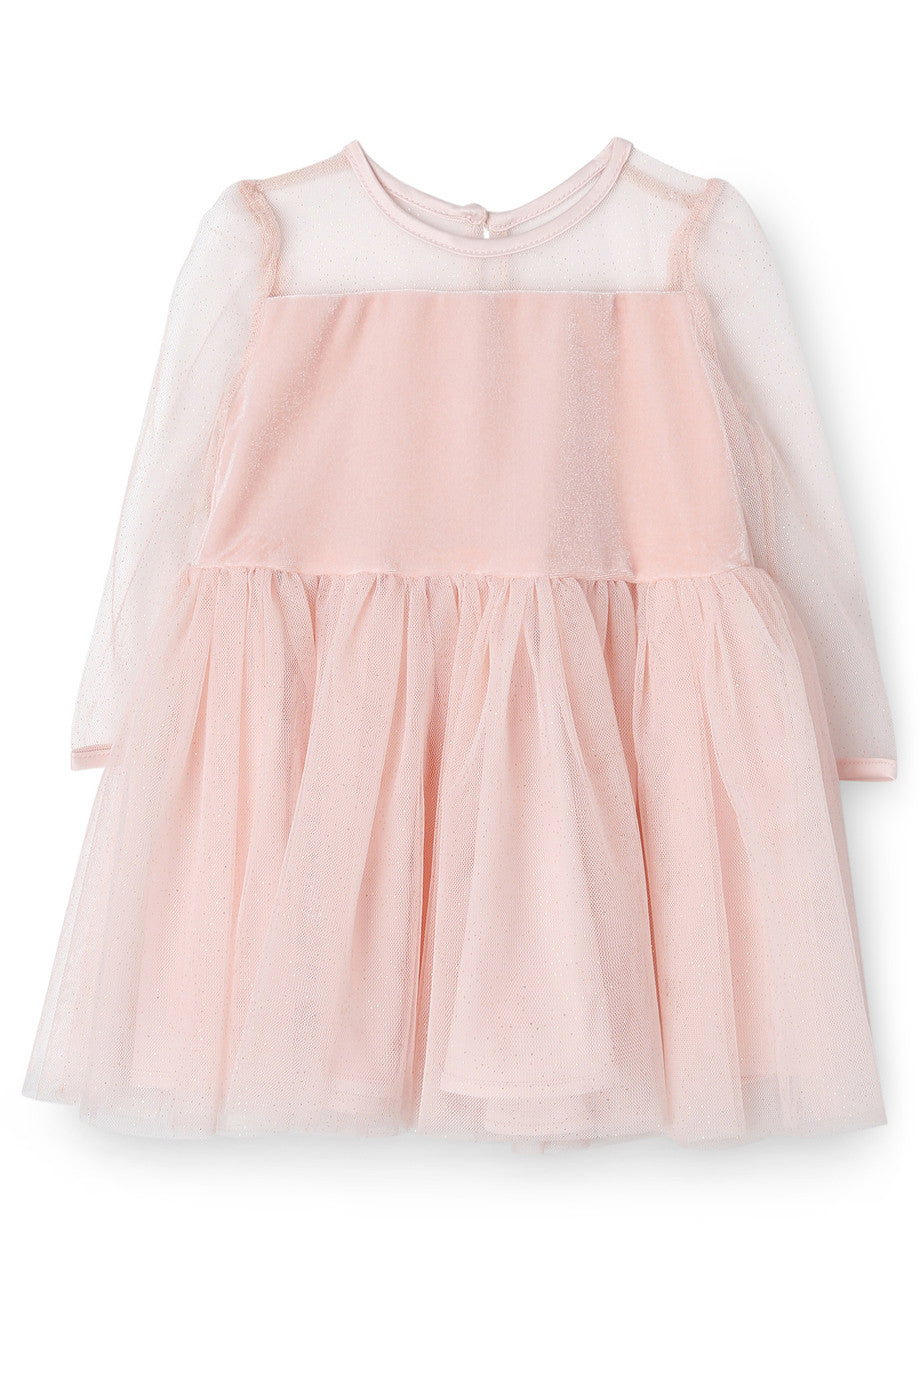 Bardot Junior Dress Velour and Mesh Dusty Pink #